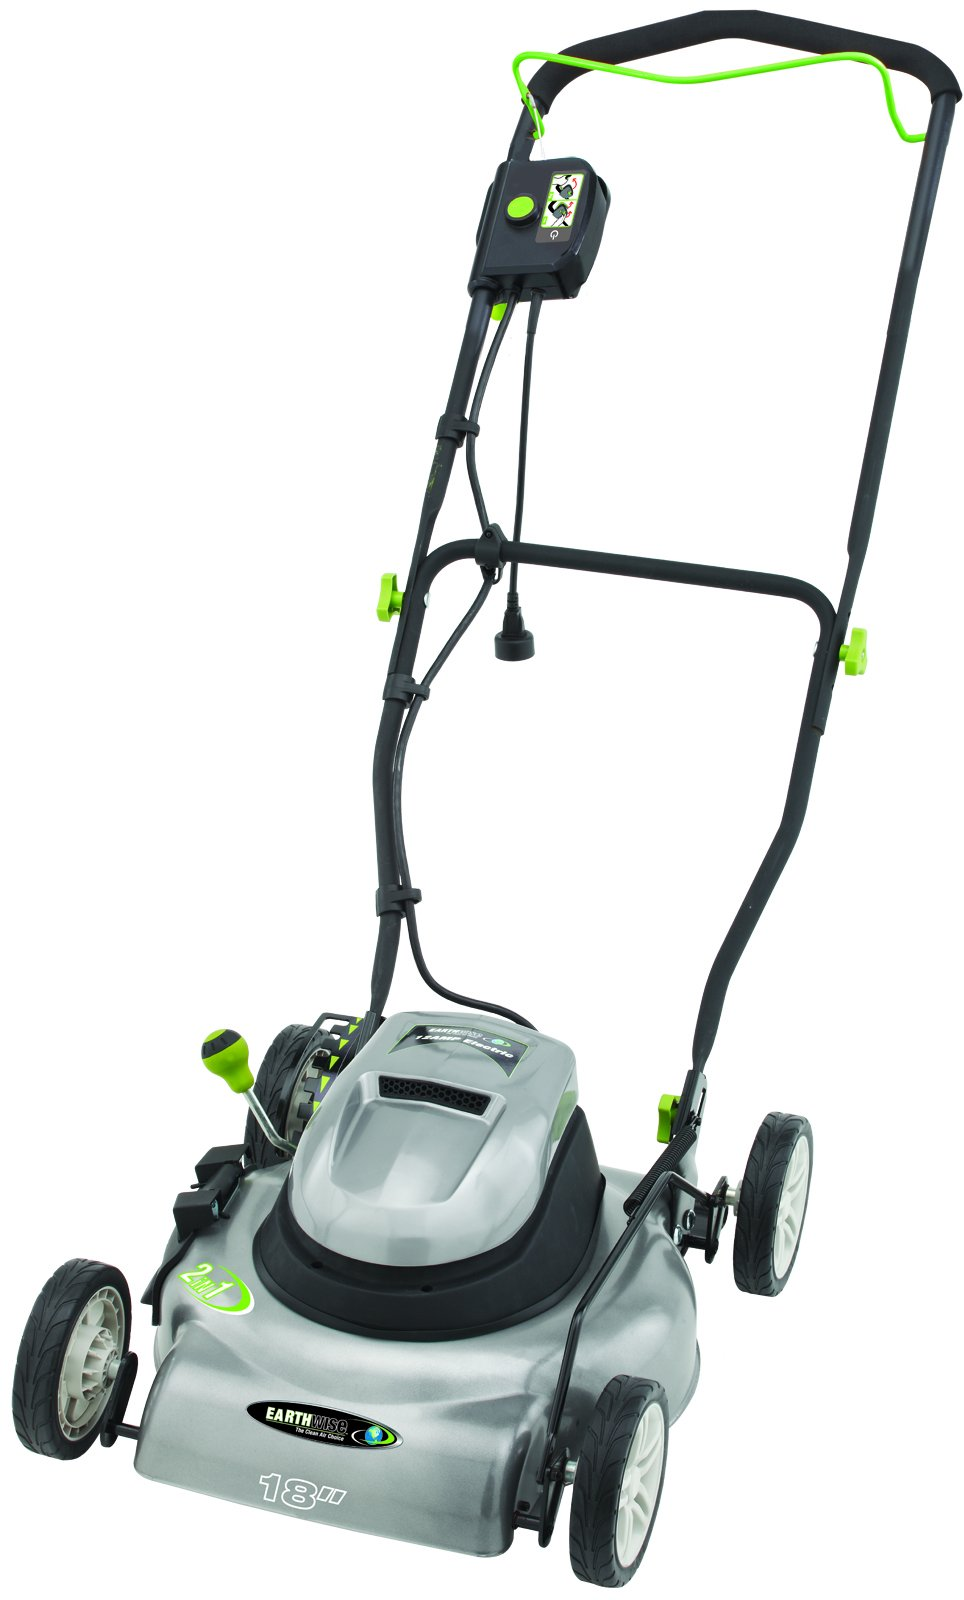 lw1-6 Small lawnmower options that you can buy online